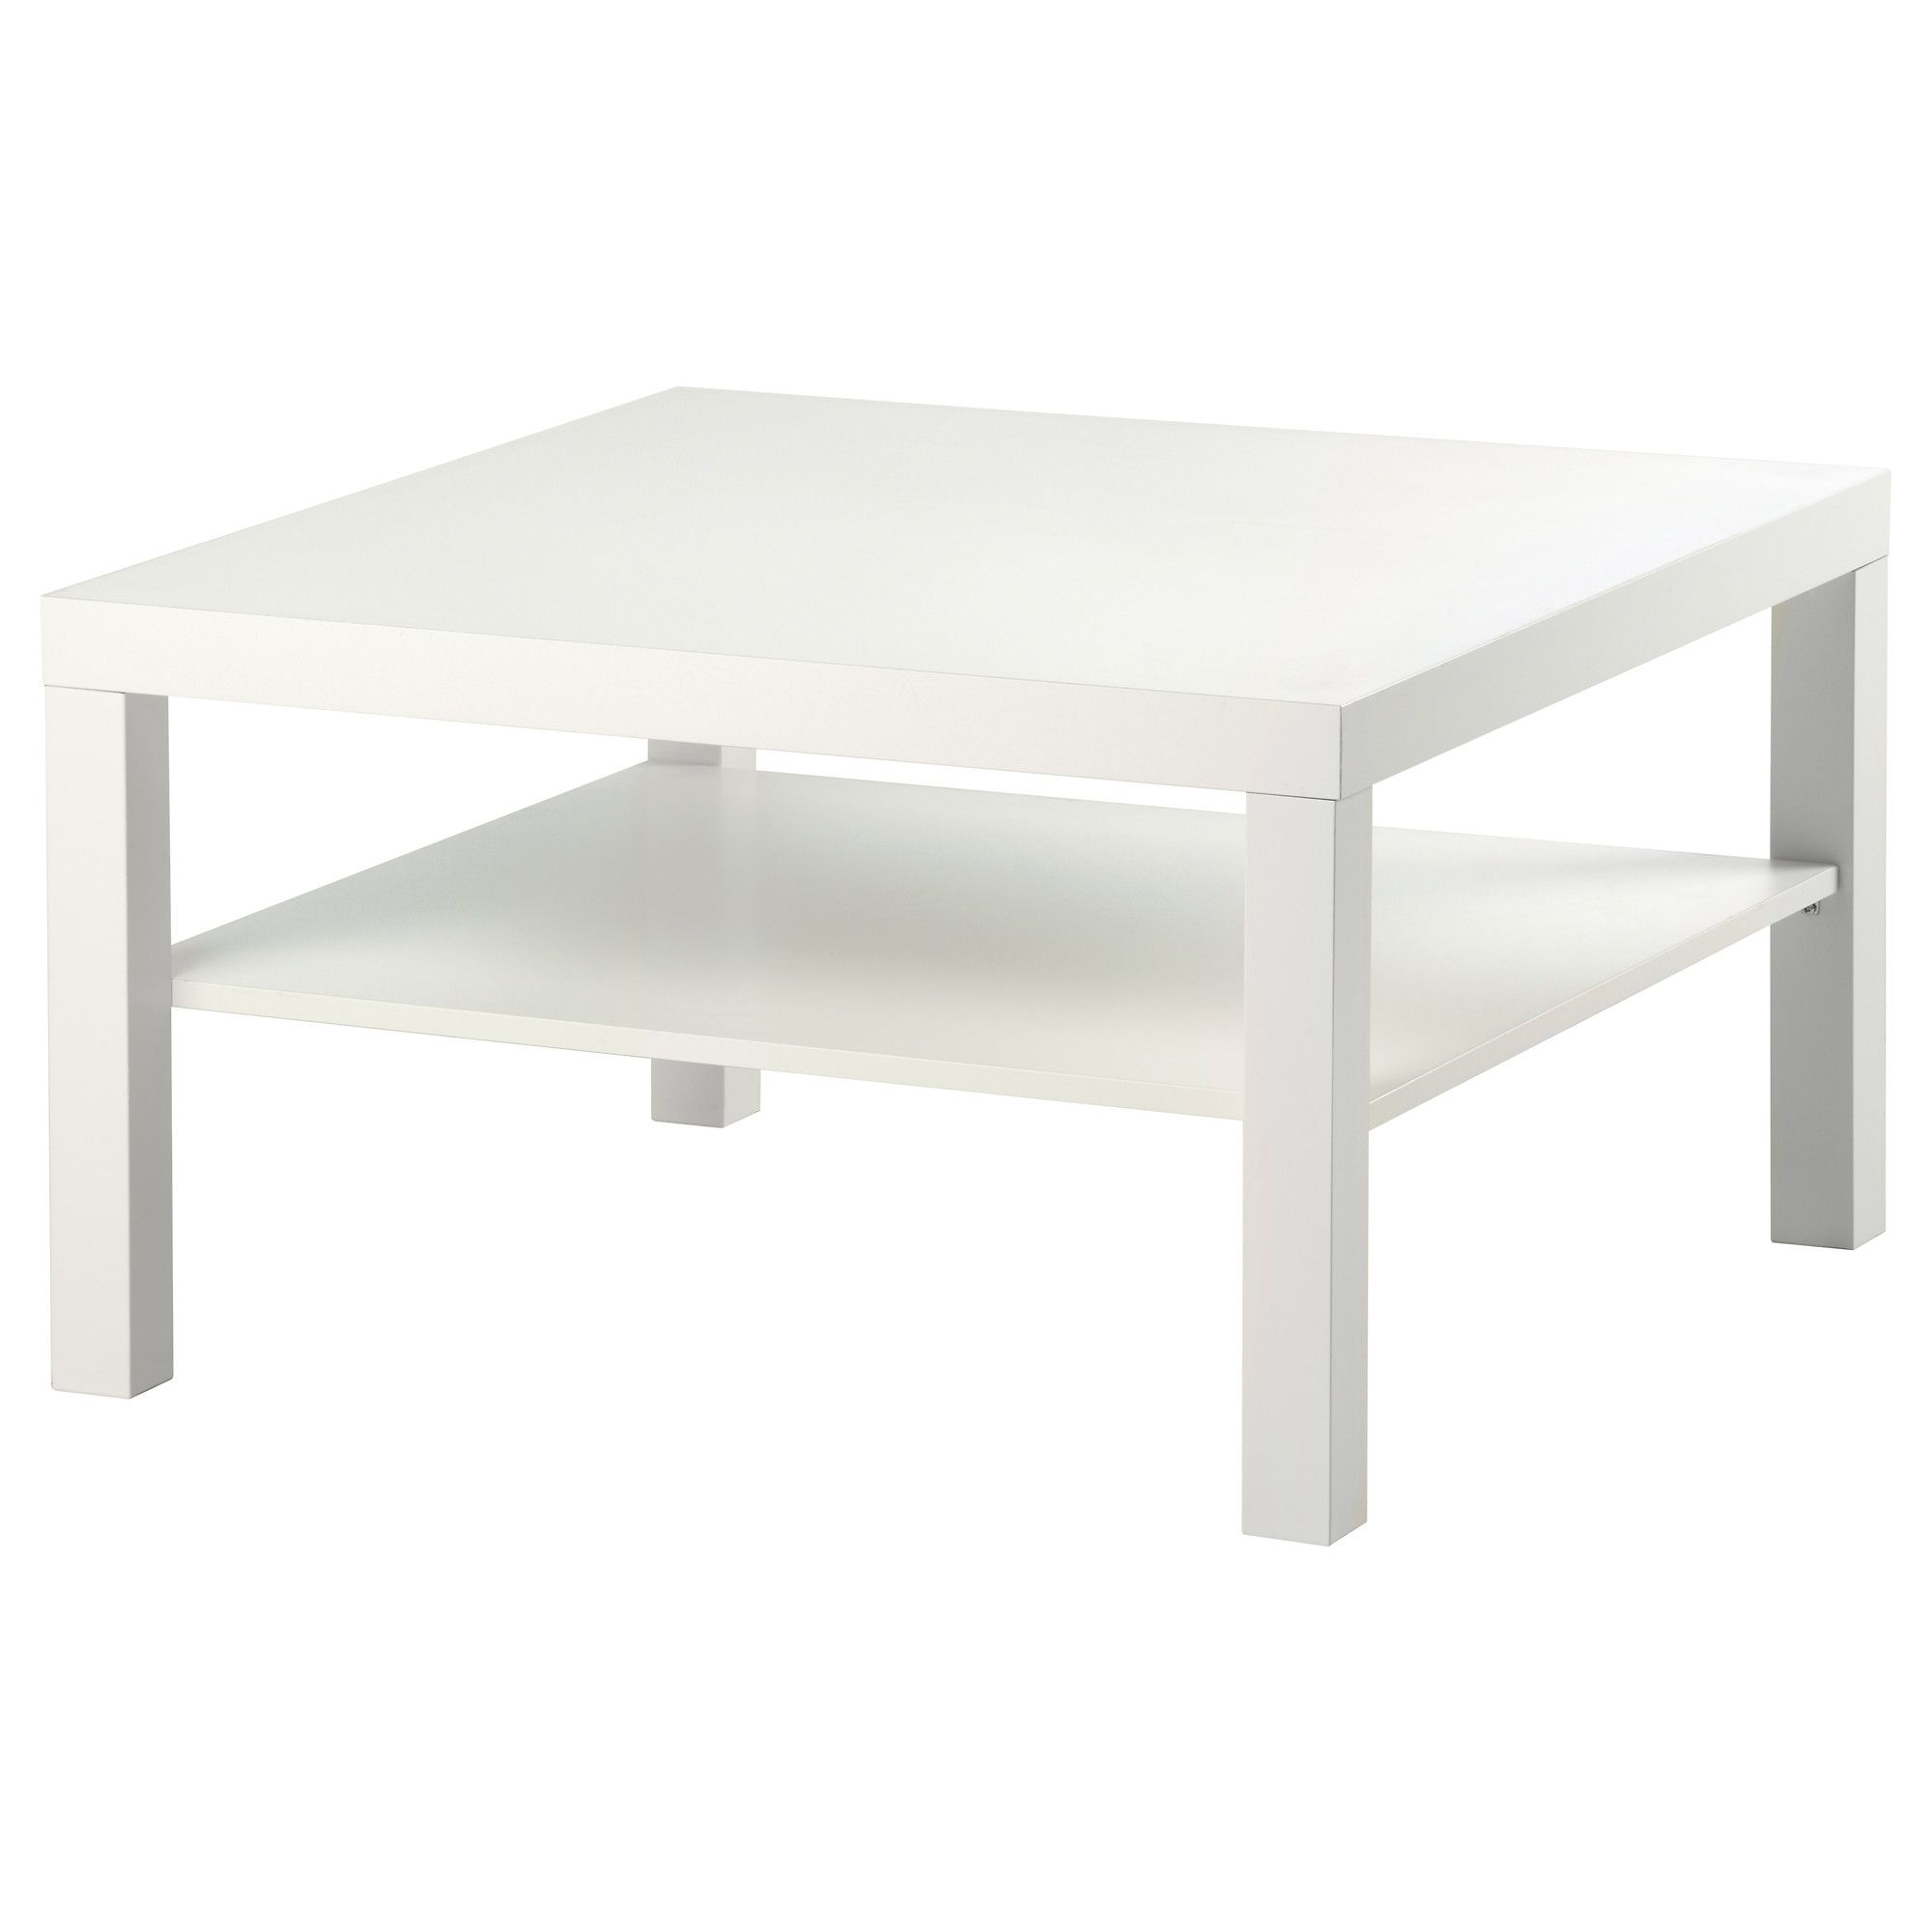 LACK Coffee table white IKEA use this as a play table for